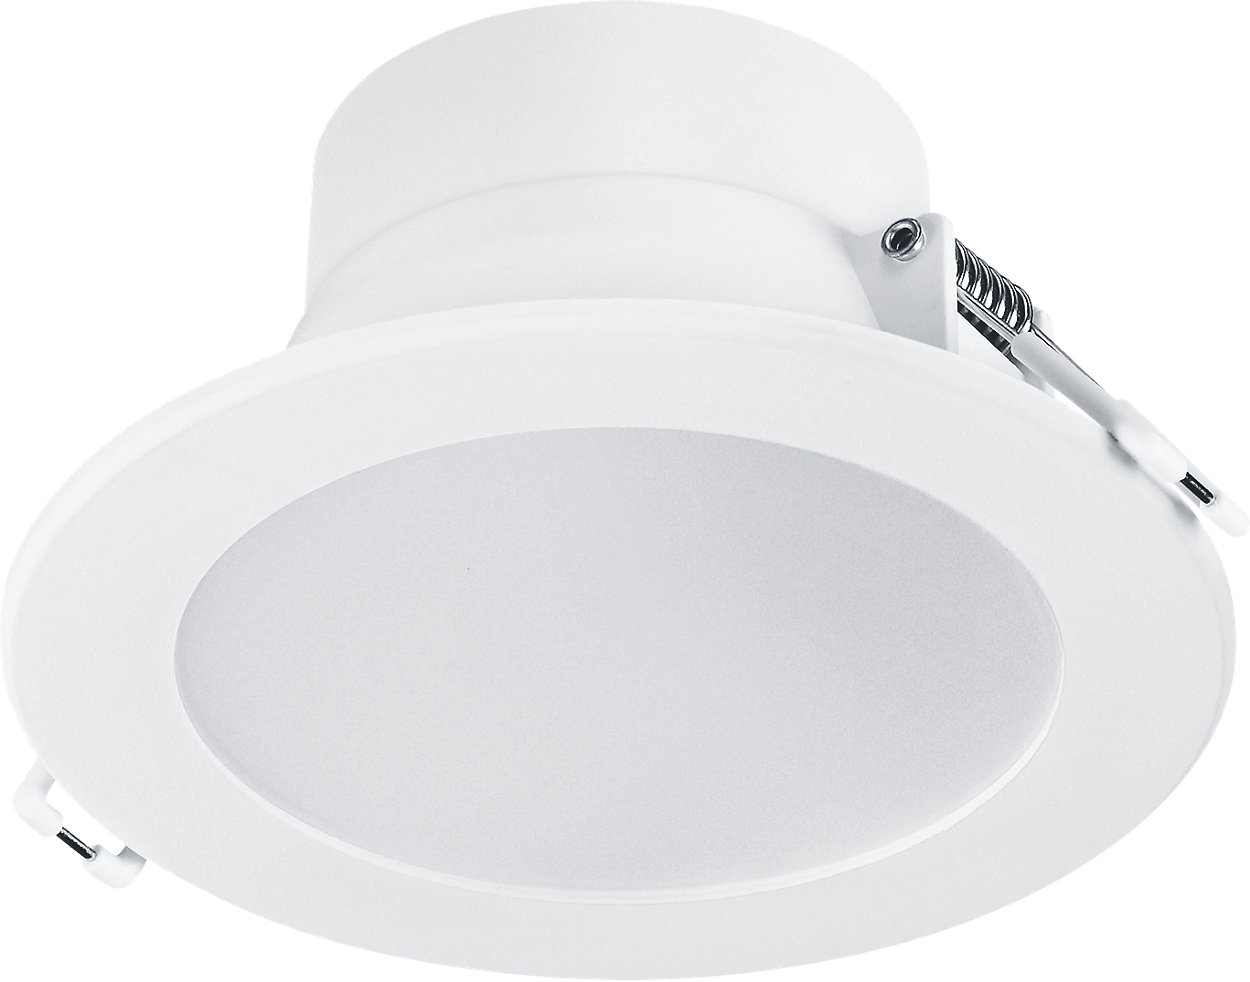 Less hassle, more savings. Tri-colour enabled downlight.